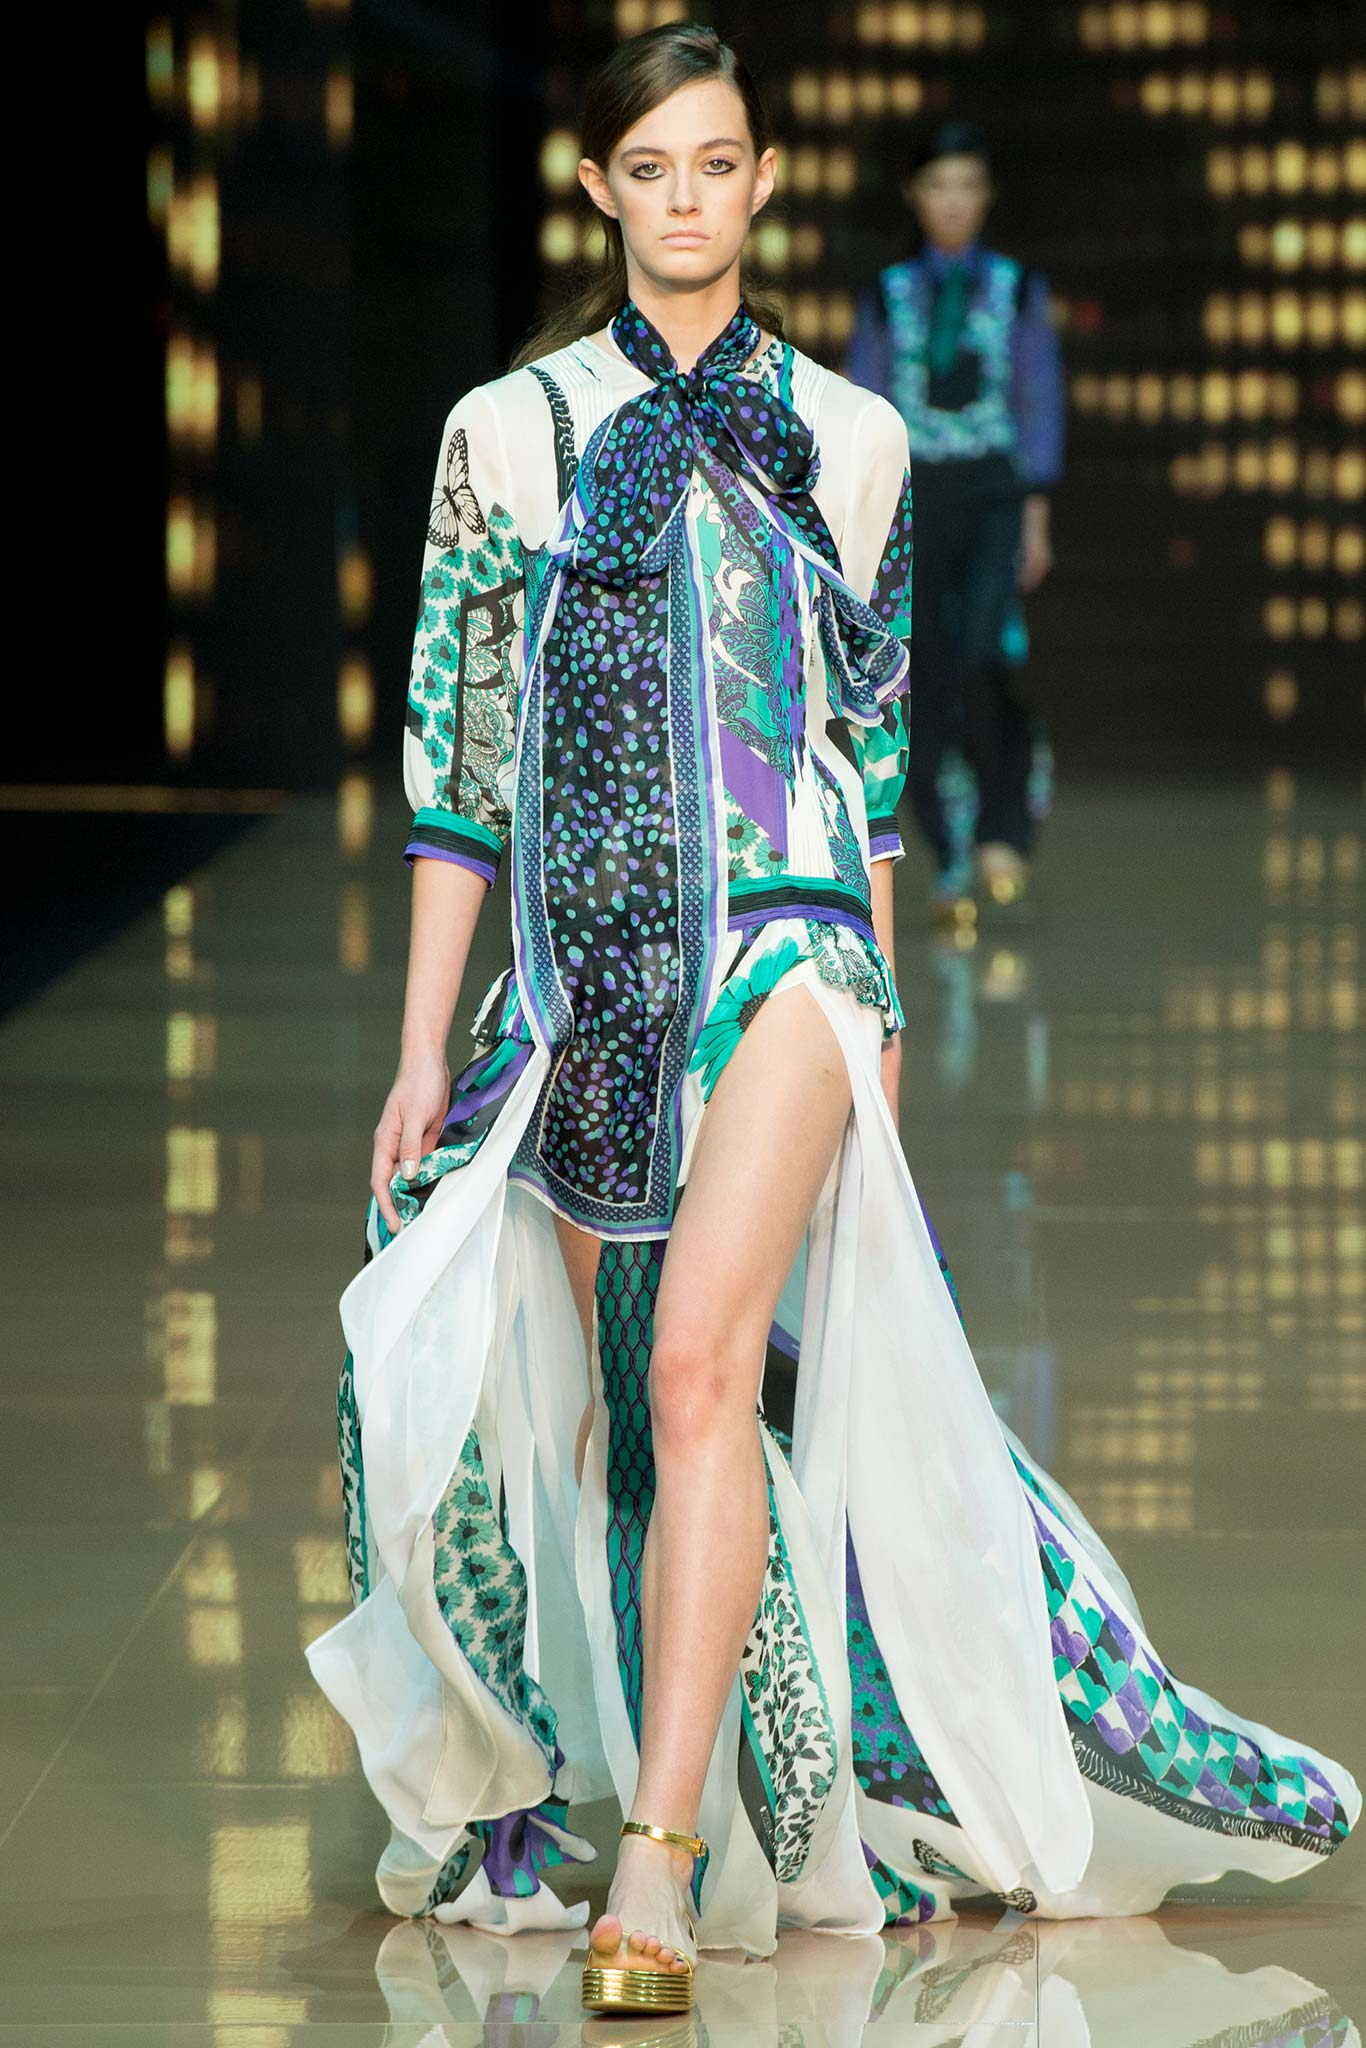 Just Cavalli Spring 2015 RTW Milan Look 1 | Favorite Spring 2015 RTW Runway Looks Part 2